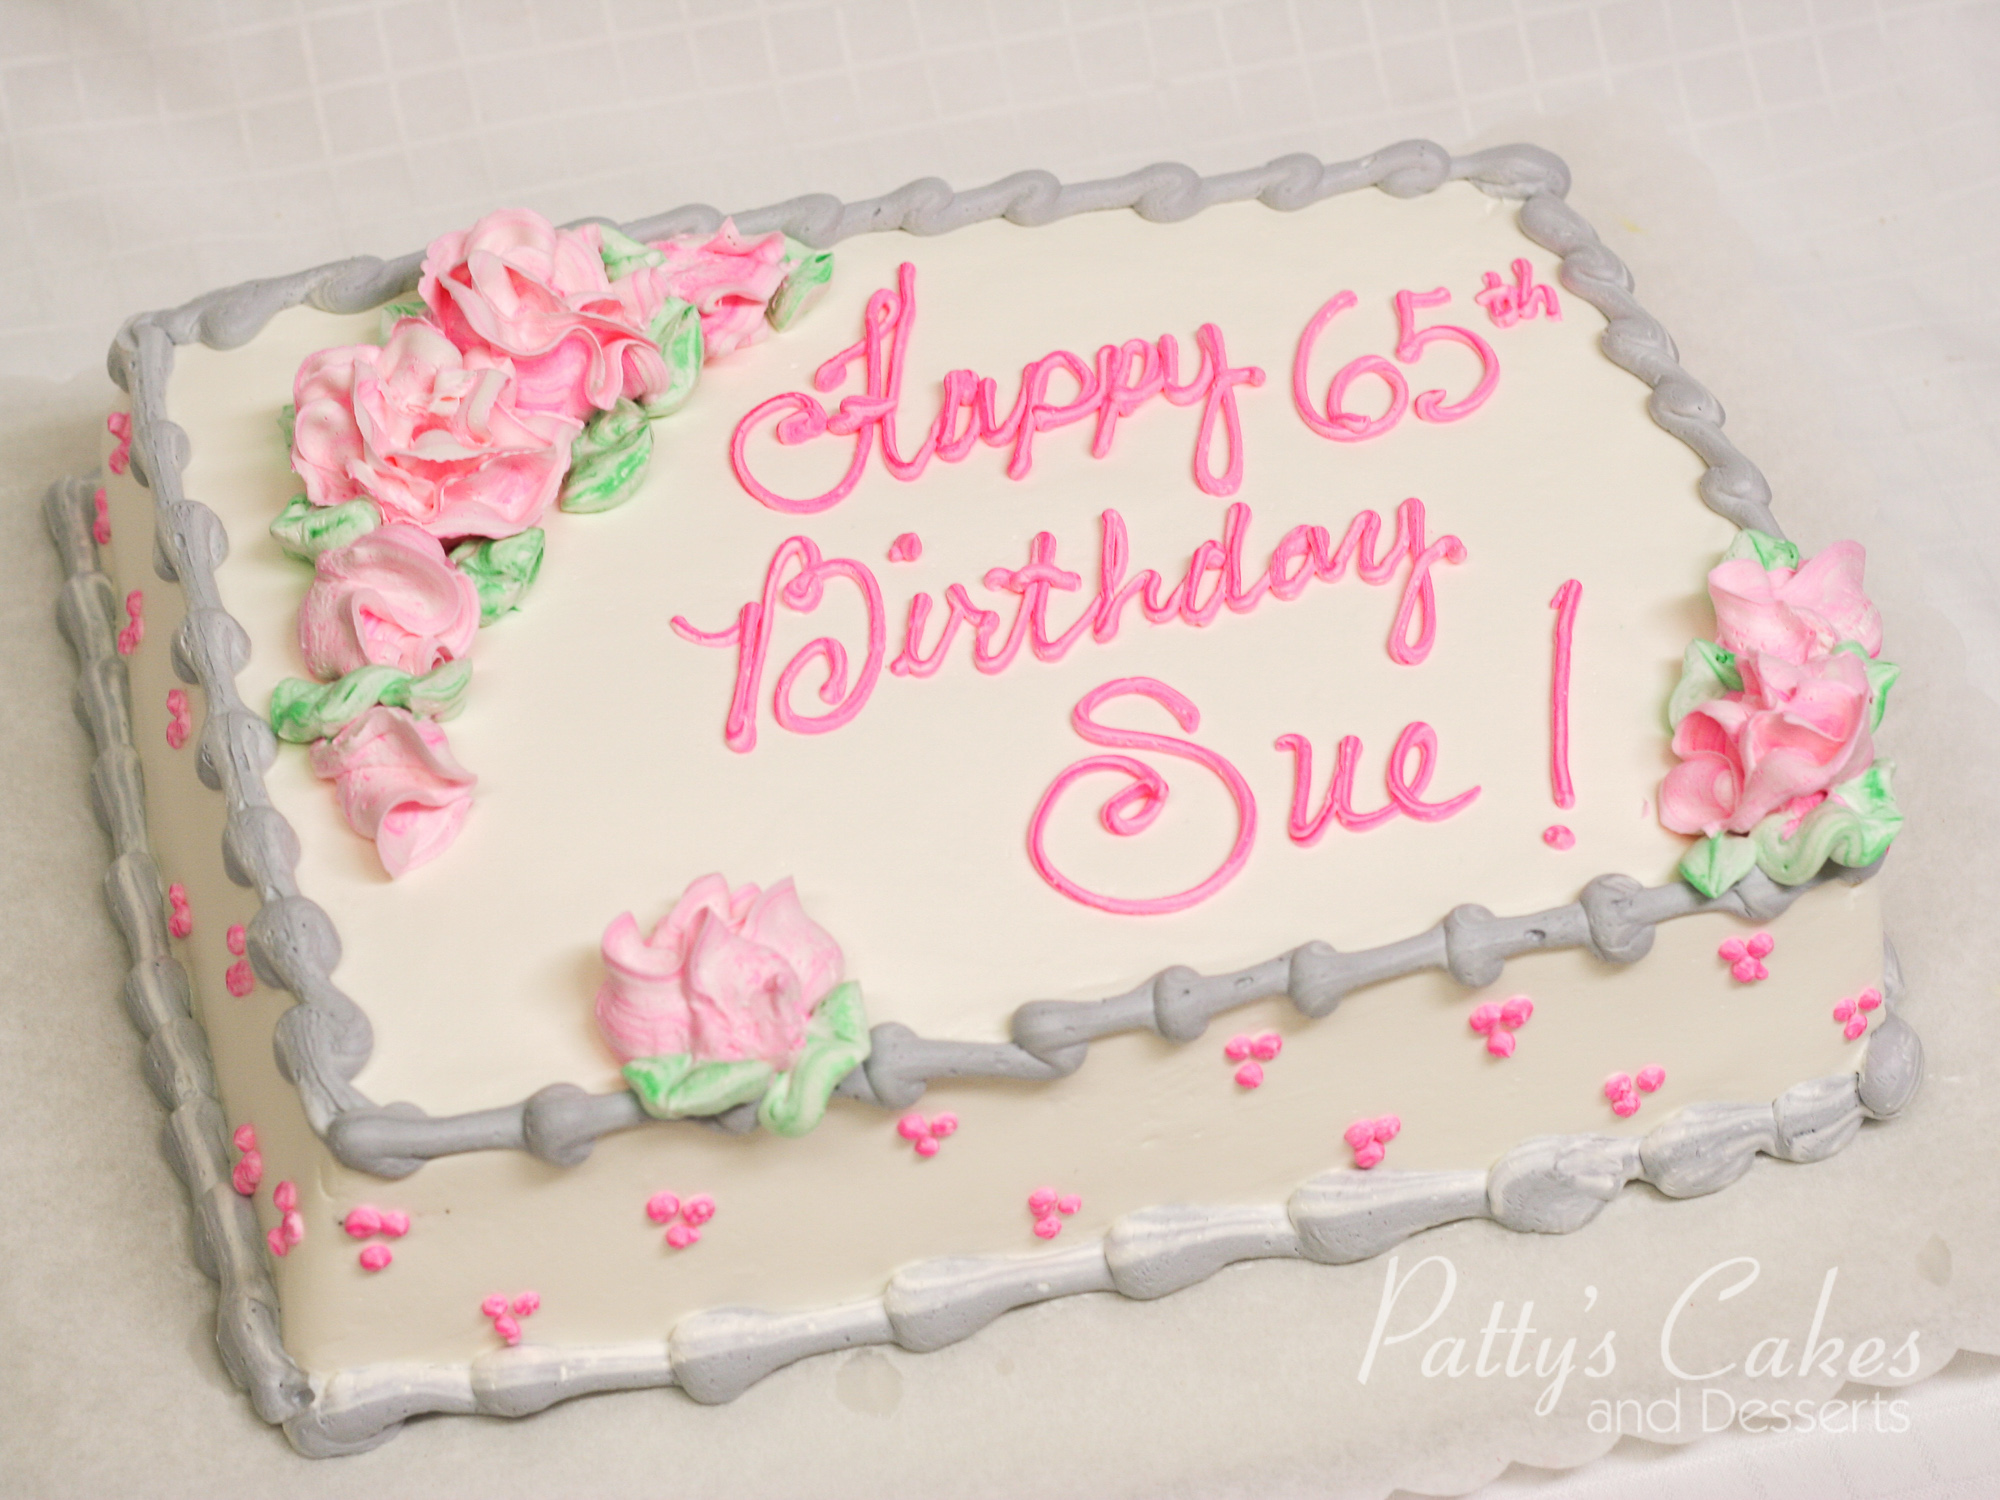 Photo Of A Pink And Grey Birthday Cake Patty S Cakes And